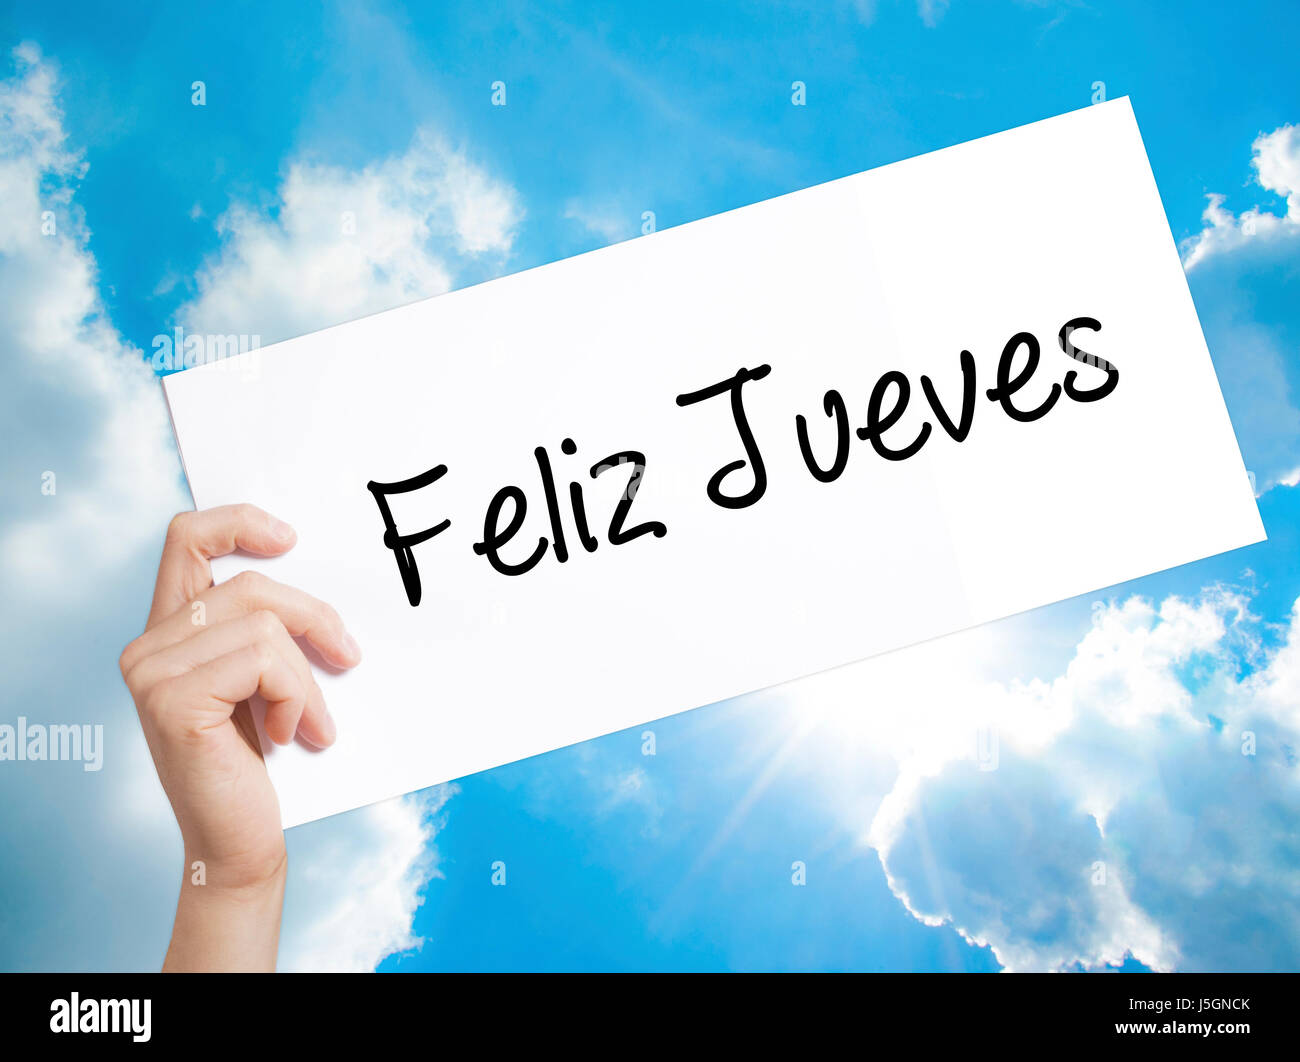 Feliz Jueves Happy Thursday In Spanish Sign On White Paper Man Stock Photo Alamy See more ideas about cartoon quotes, cereal pops, christian quotes jesus. https www alamy com stock photo feliz jueves happy thursday in spanish sign on white paper man hand 141124275 html